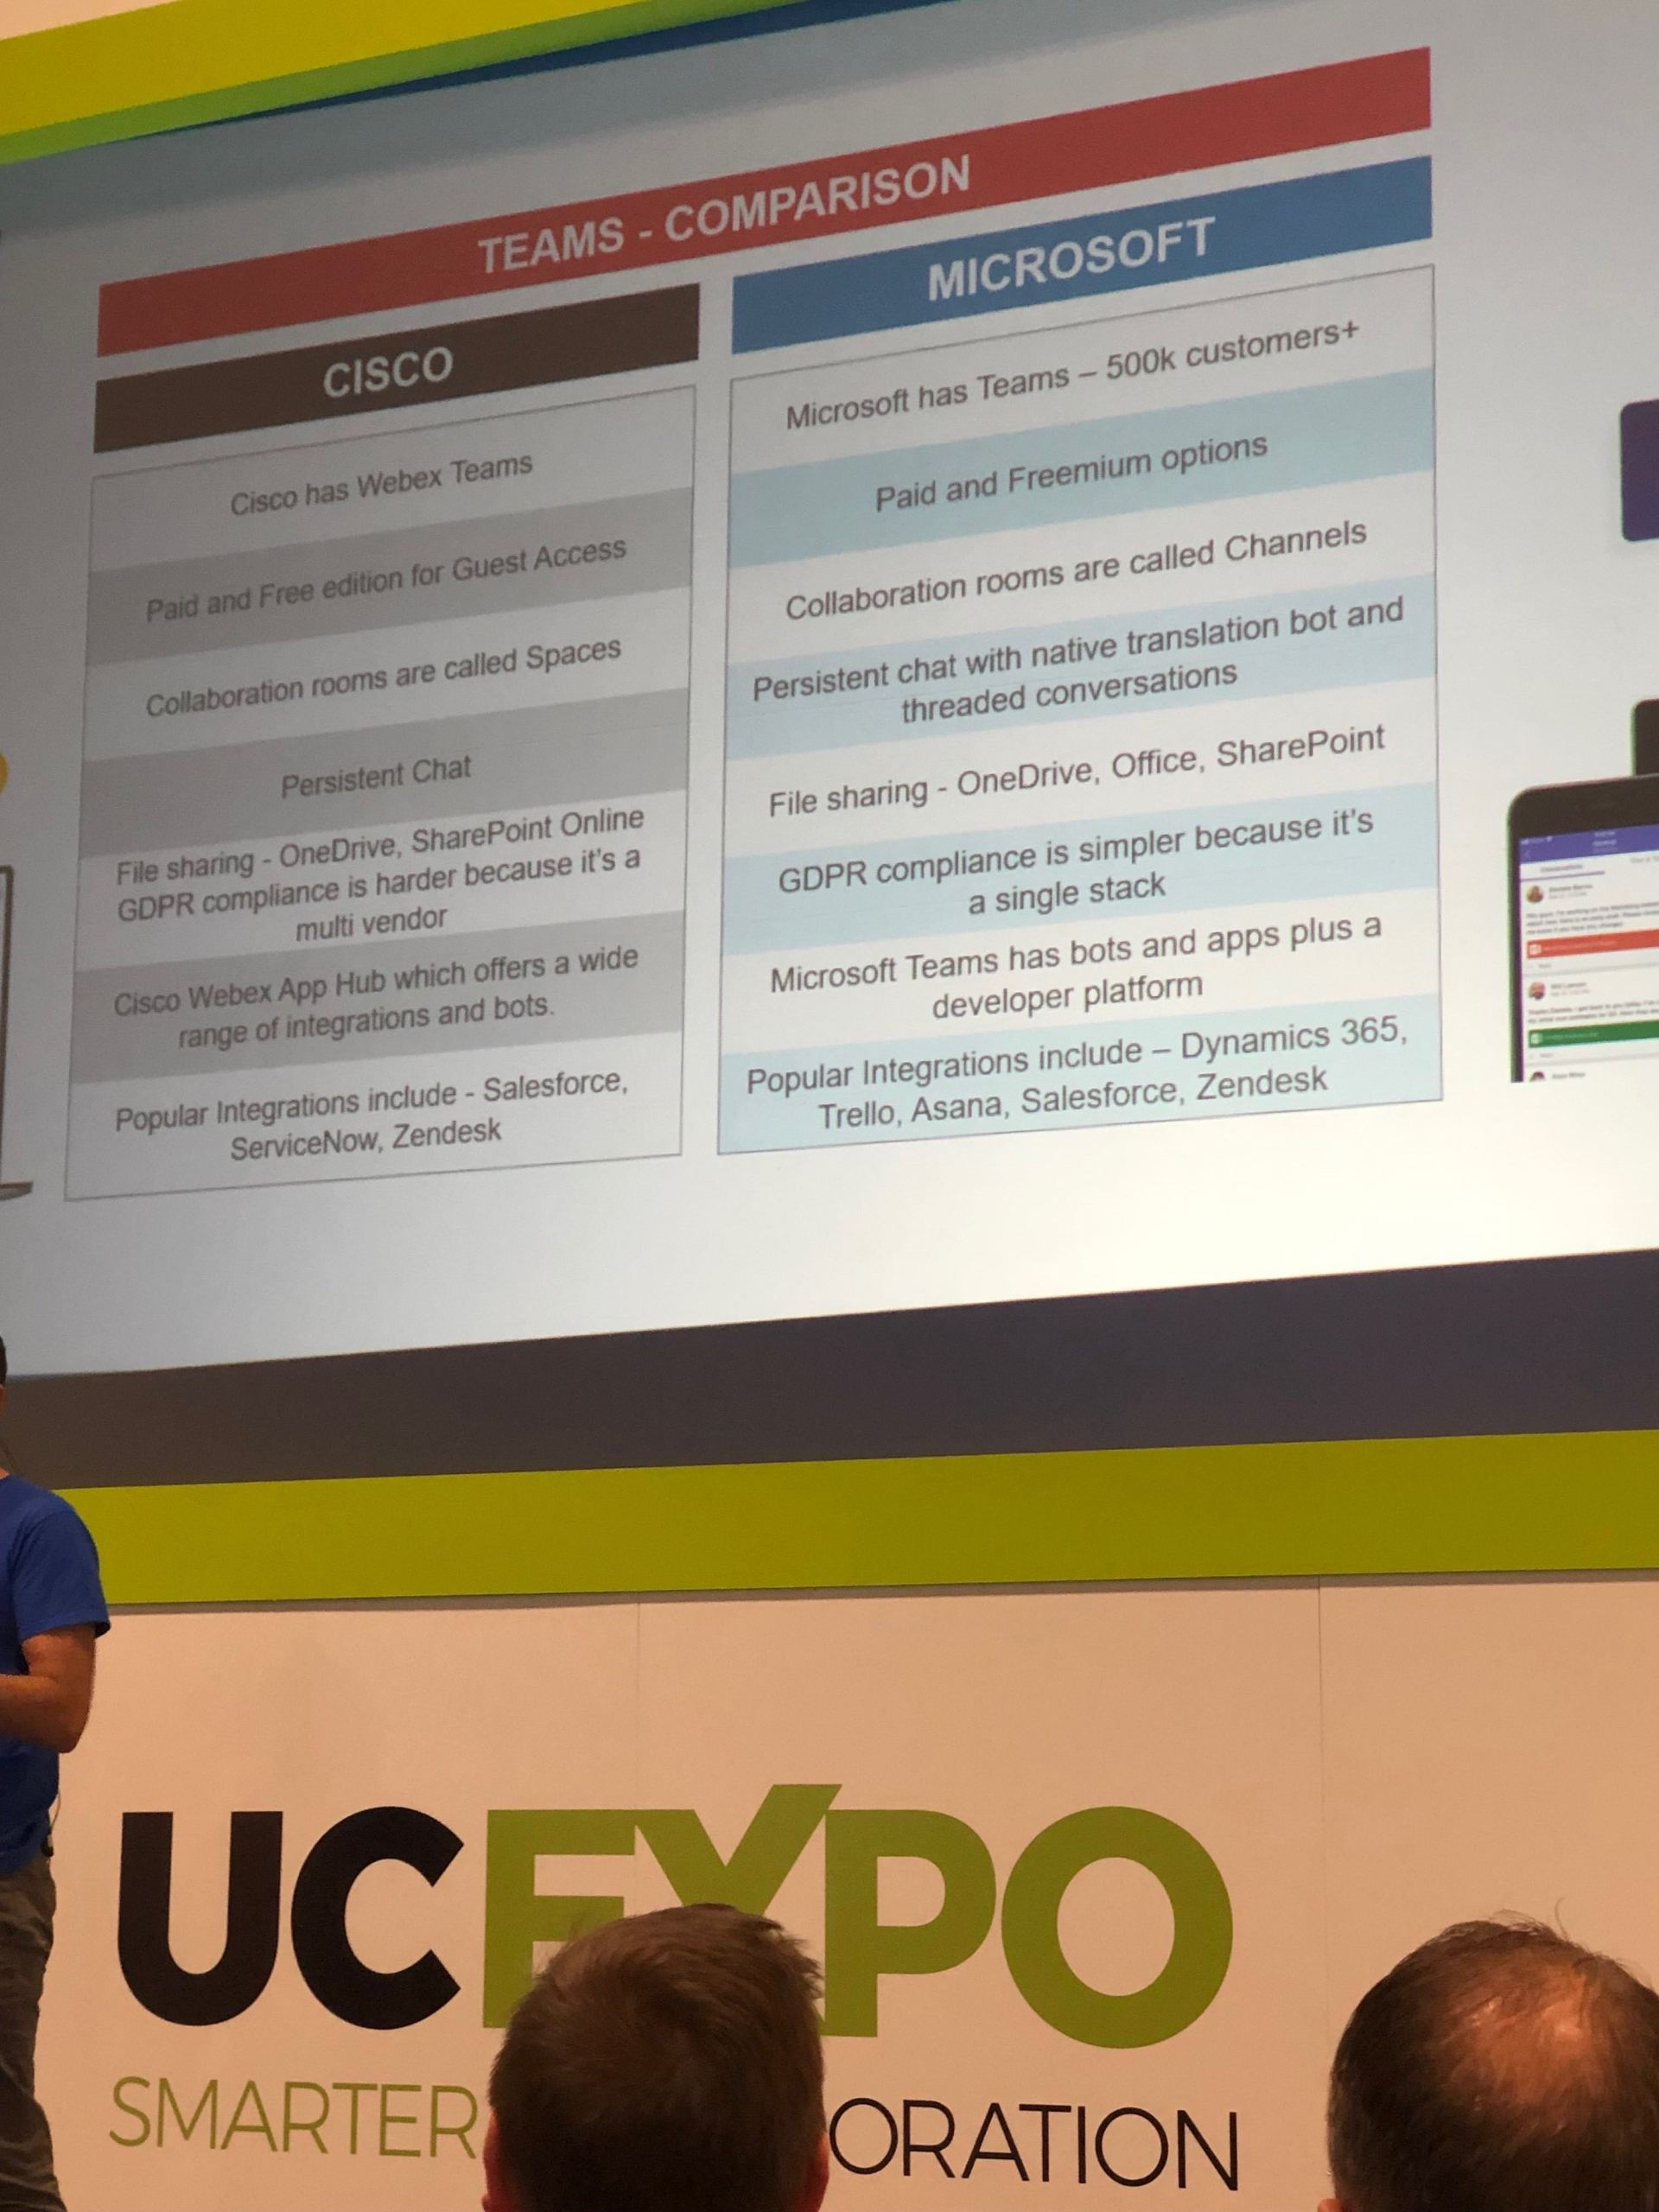 Comparing Microsoft Teams and Cisco Webex Teams ta UC Expo